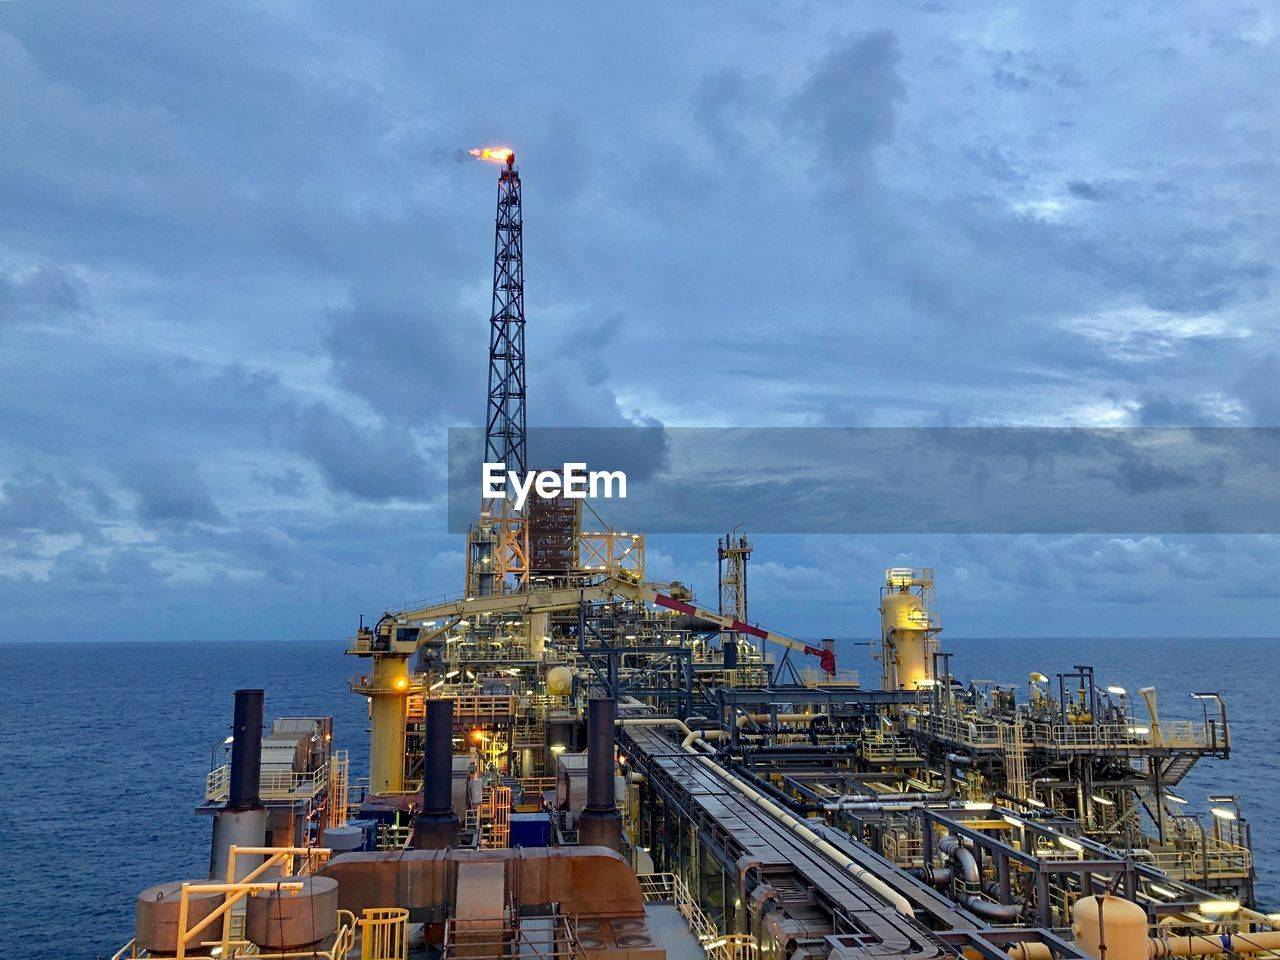 sky, industry, architecture, cloud - sky, oil industry, fuel and power generation, sea, water, built structure, nature, factory, building exterior, offshore platform, no people, business, outdoors, machinery, oil, horizon over water, industrial equipment, pollution